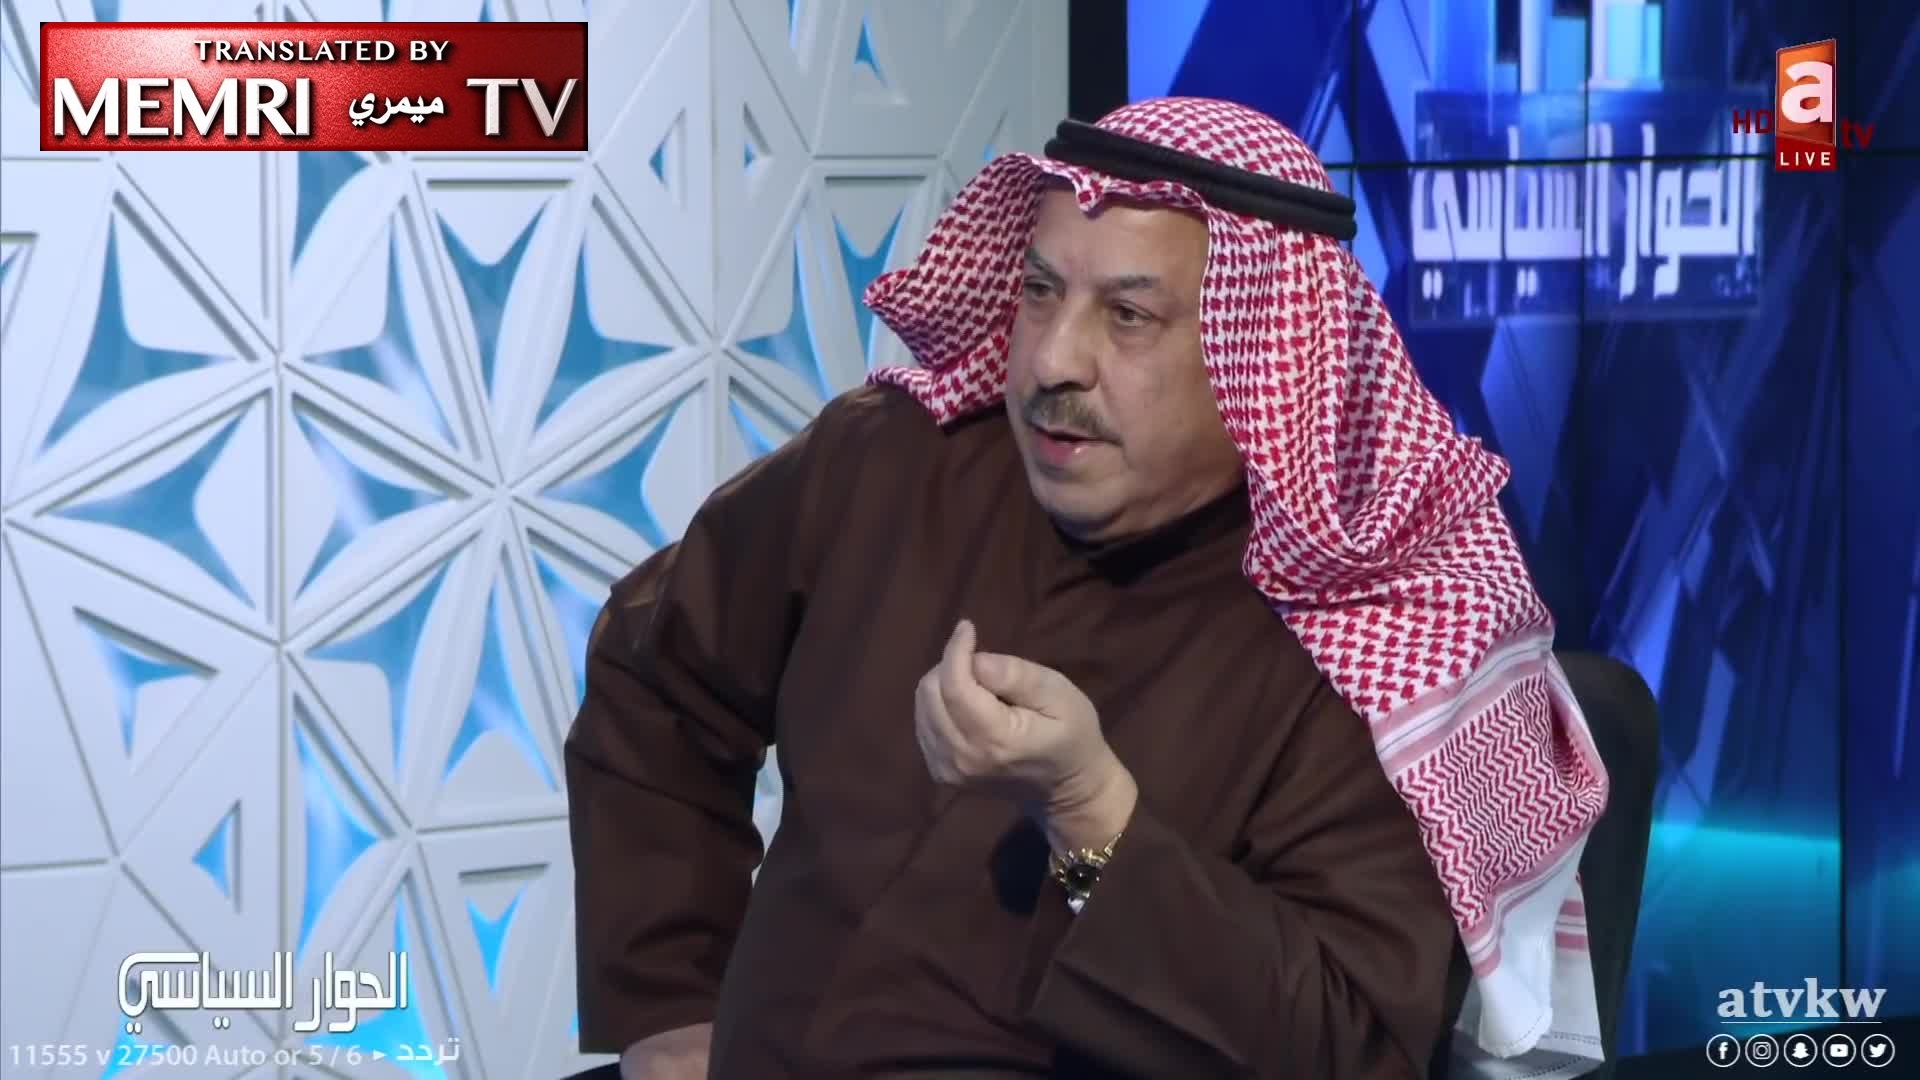 Former Kuwaiti Minister Ali Al-Baghli: Kuwaitis Who Convert to Judaism, Other Religions Should Not Lose Their Citizenship; Our Laws Does Not Forbid Conversion